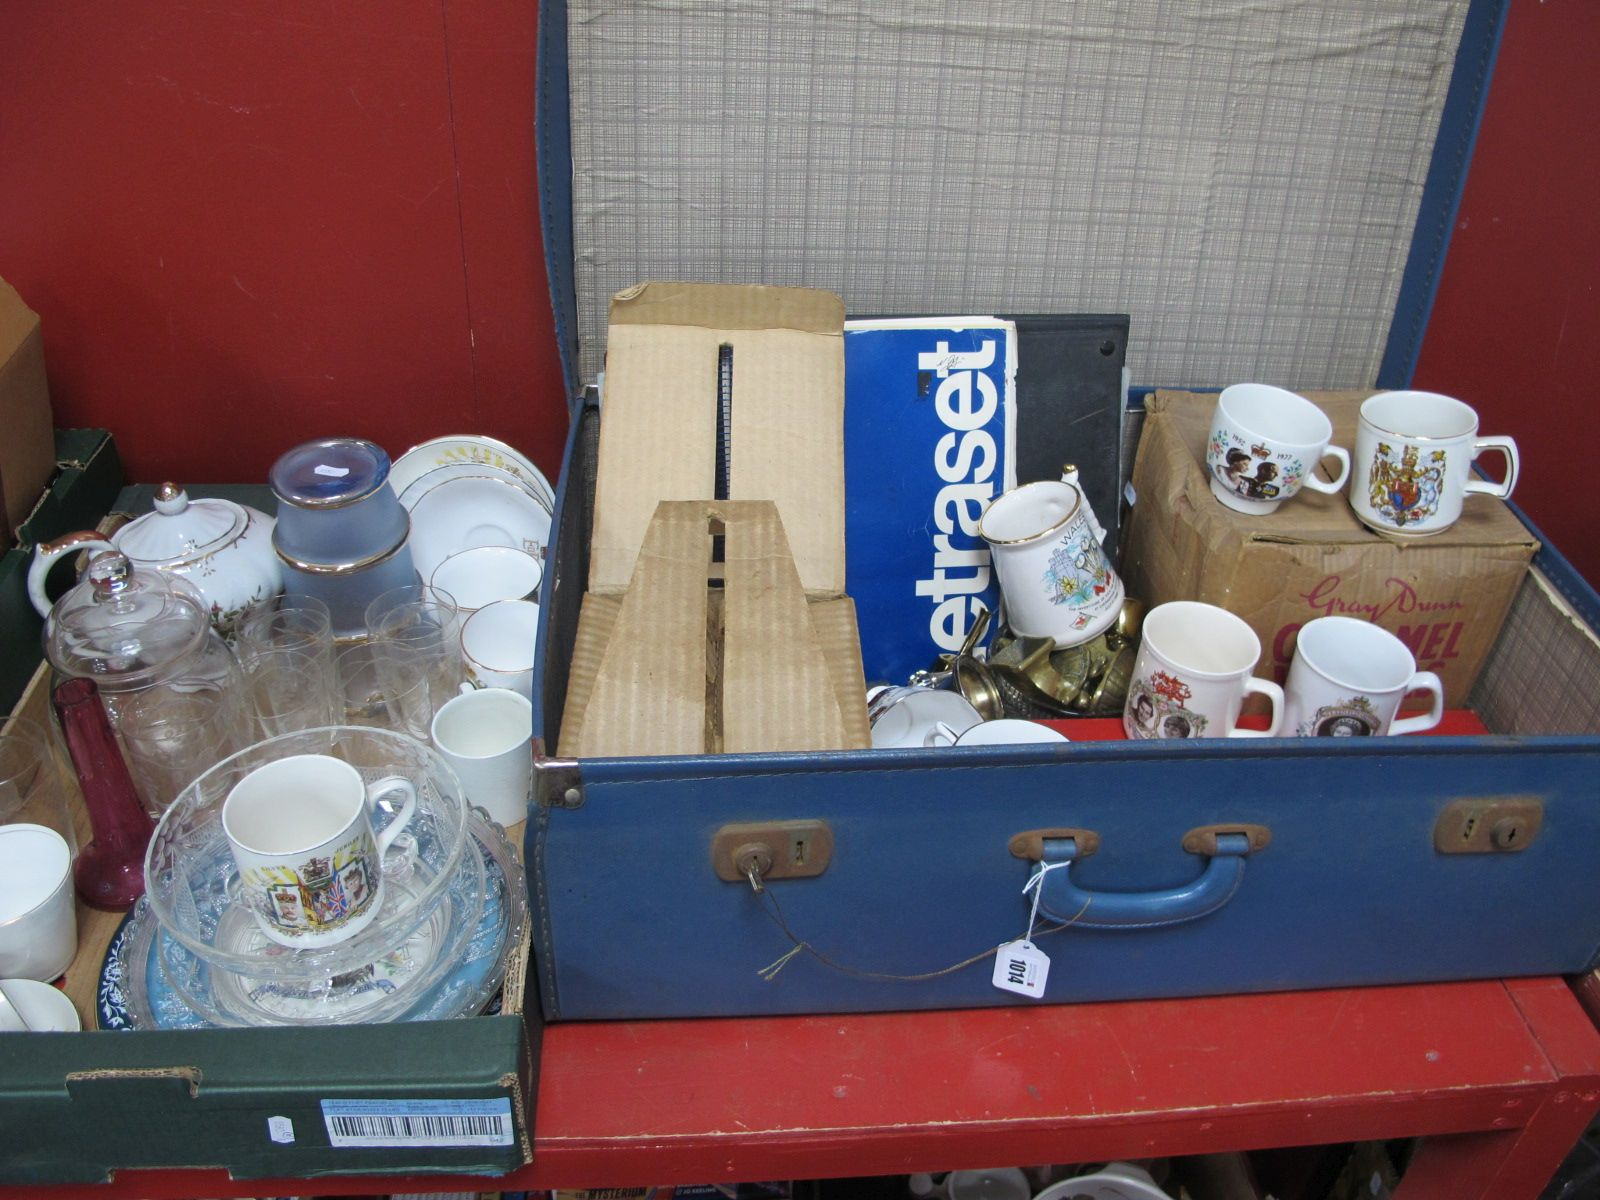 Commemorative China and Glass, Letrase, Viewmaster etc, in a case and box.